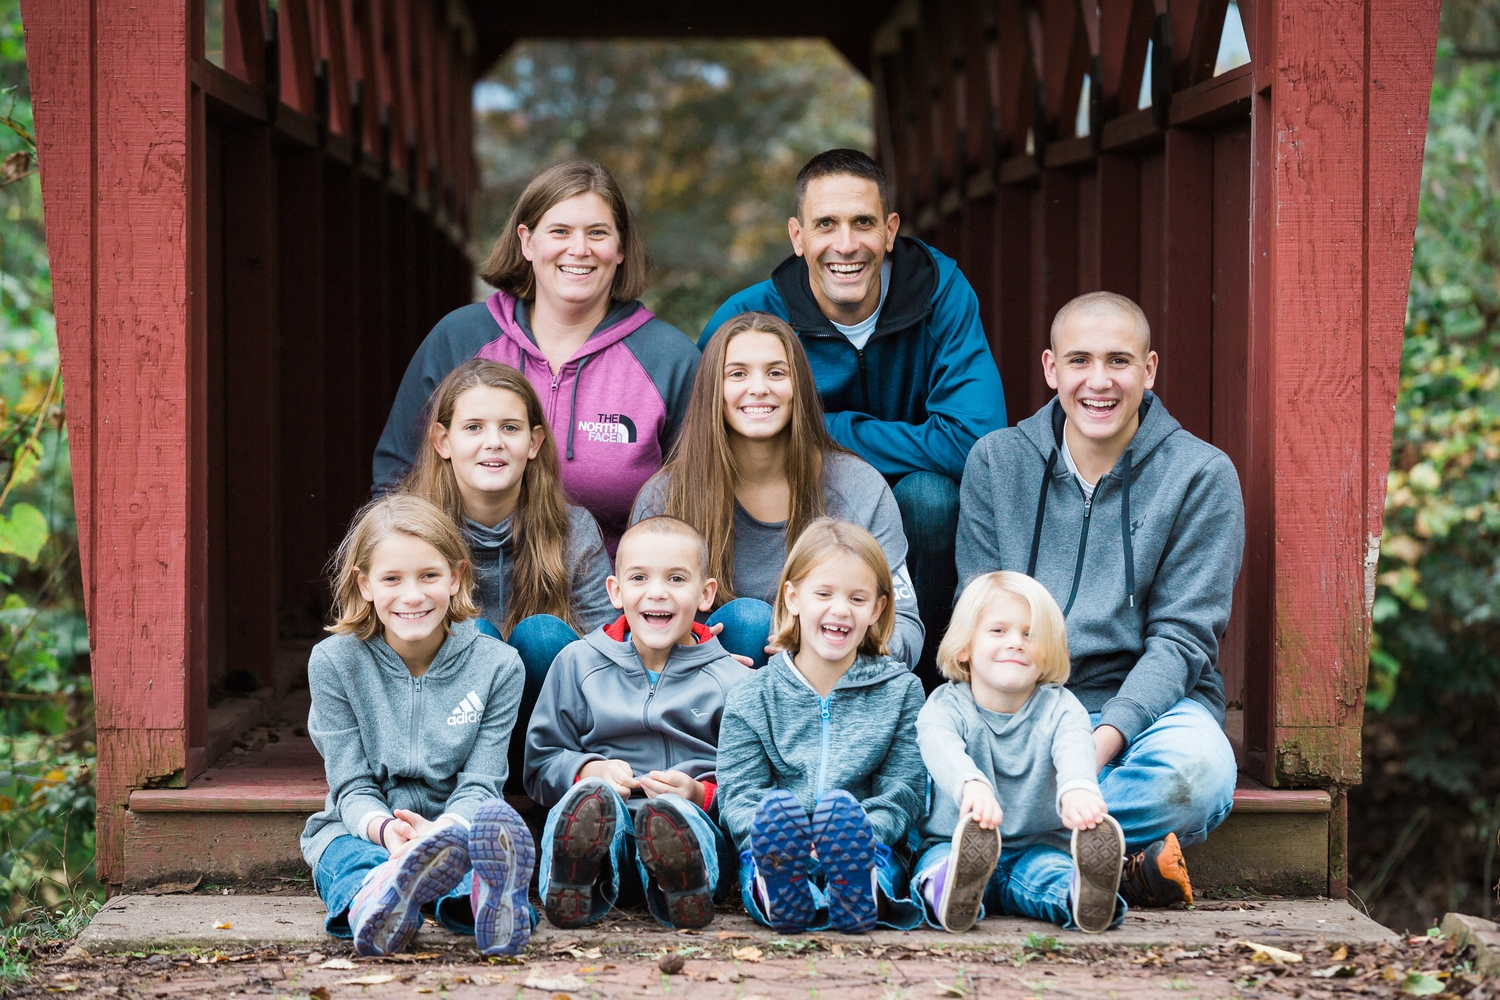 Associate Pastor of Youth and Family - Steve Halstead and family